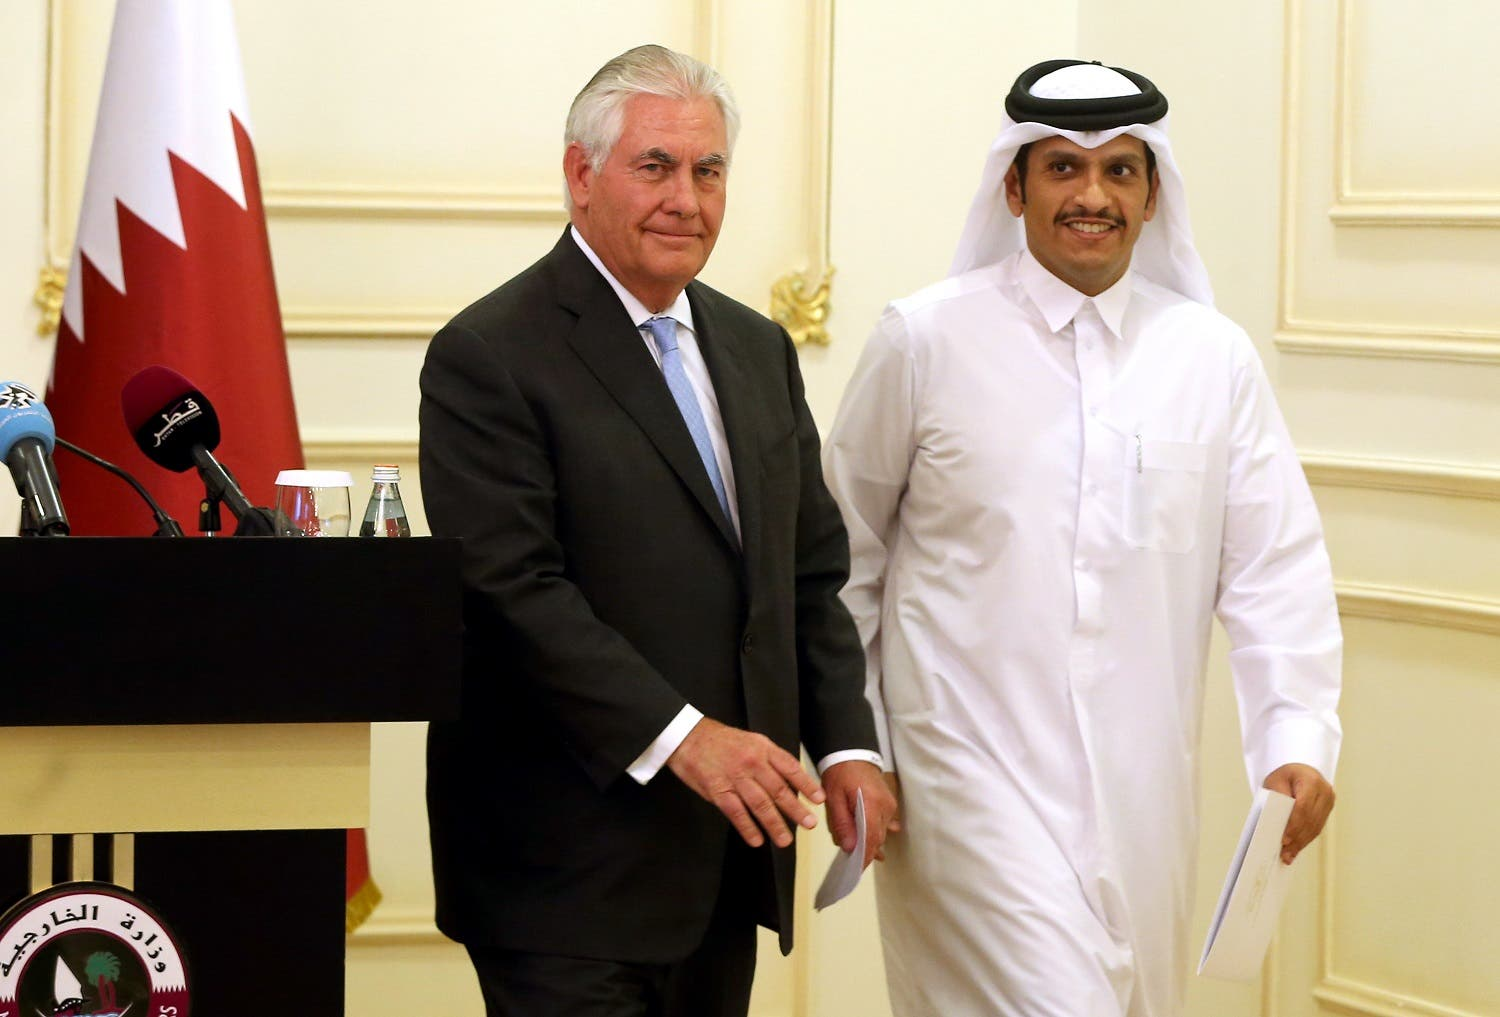 Rex Tillerson and Sheikh Mohammed bin Abdulrahman Al-Thani leave the stage following a press conference in Doha, on July 11, 2017. (AFP)